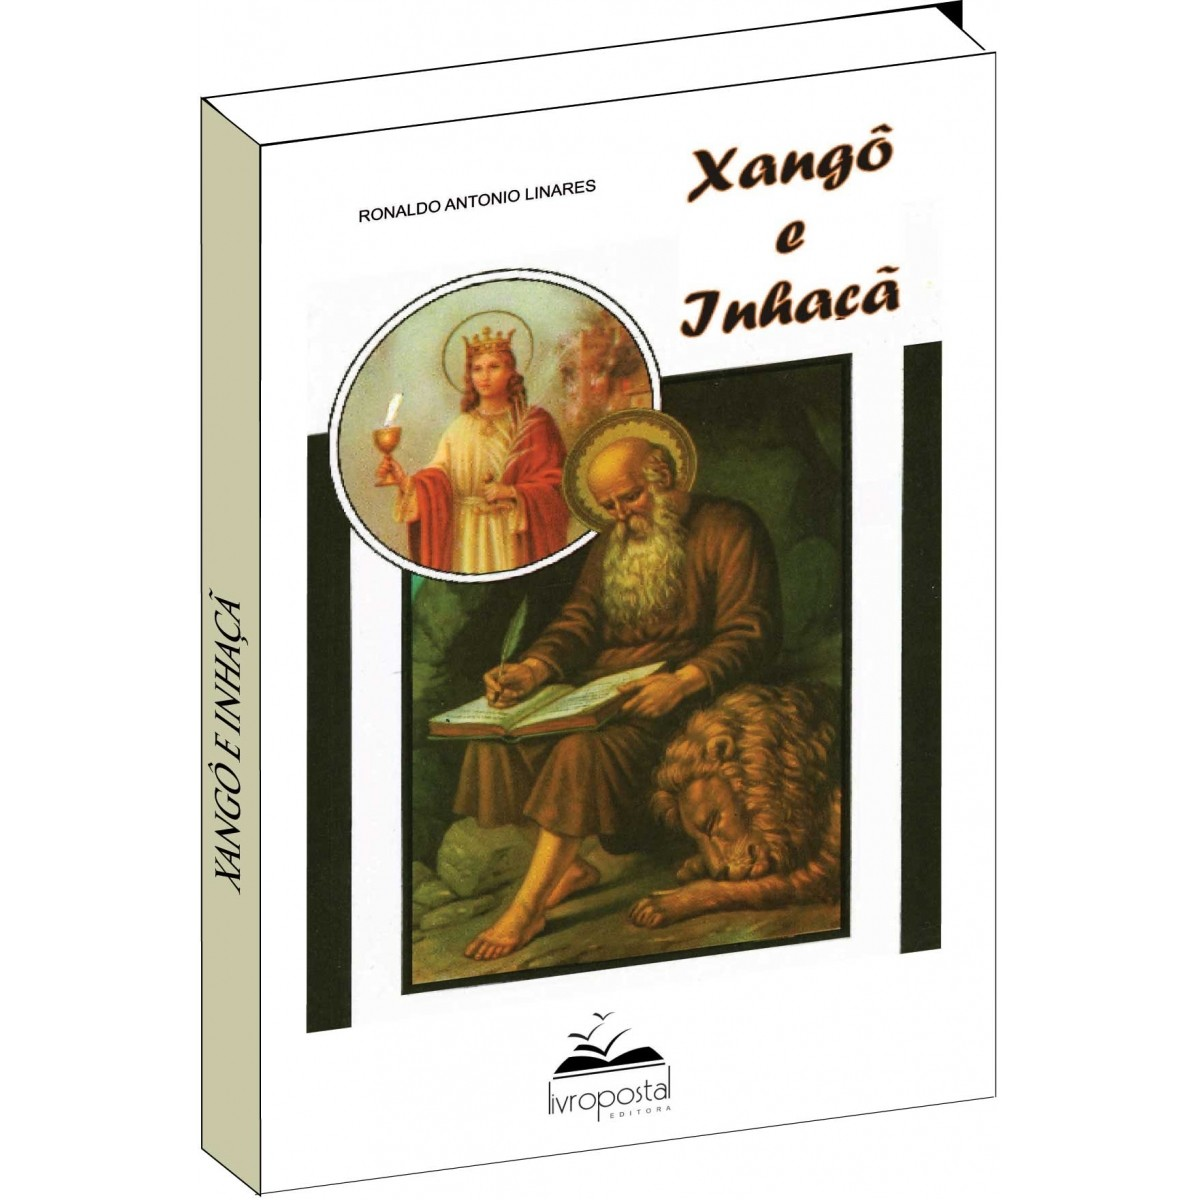 Ebook do Livro de Xangô e Inhaçã  - Livropostal Editora